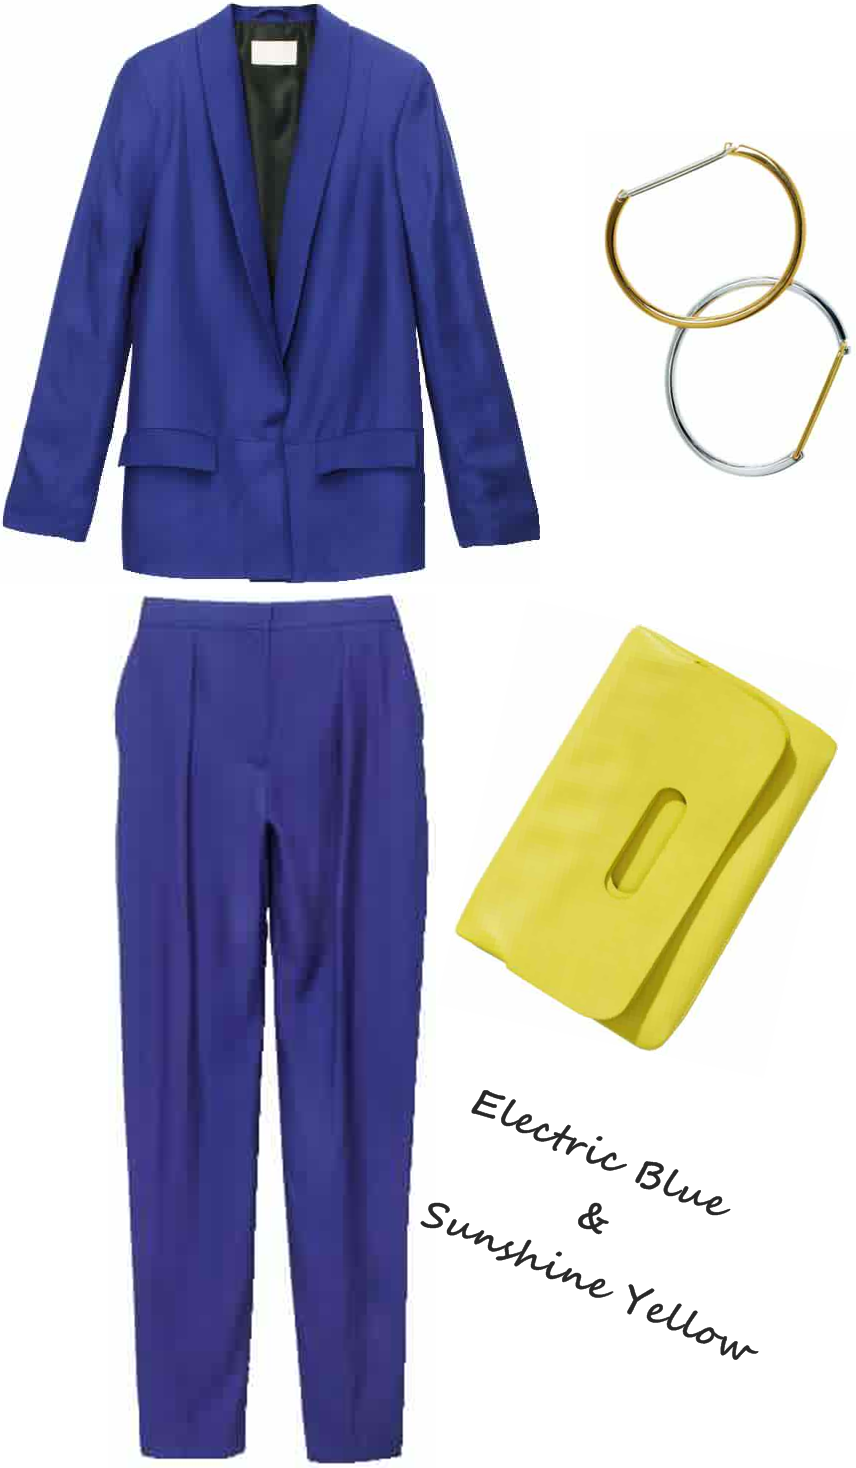 electric blue blazer, H&M pants, yellow clutch, gul clutch H&M